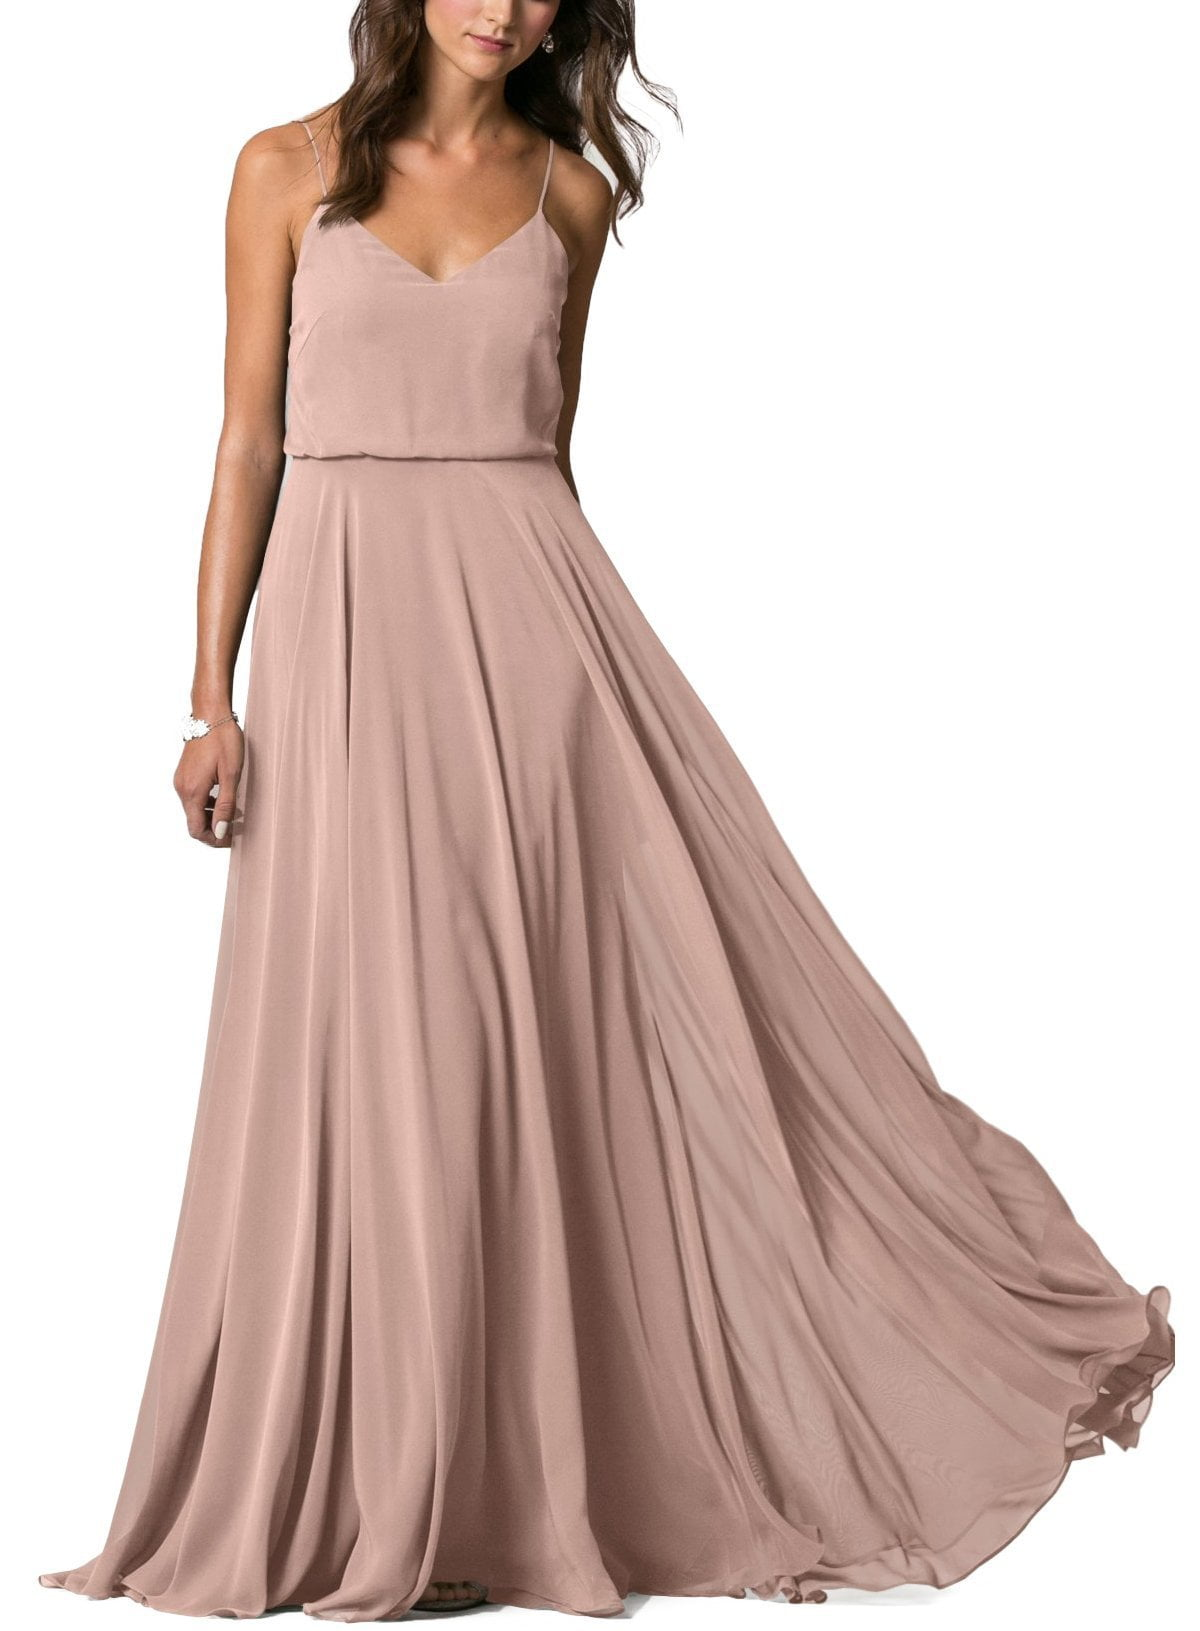 f8422e7bbd Jenny Yoo Inesse in Whipped Apricot Bridesmaid Dress